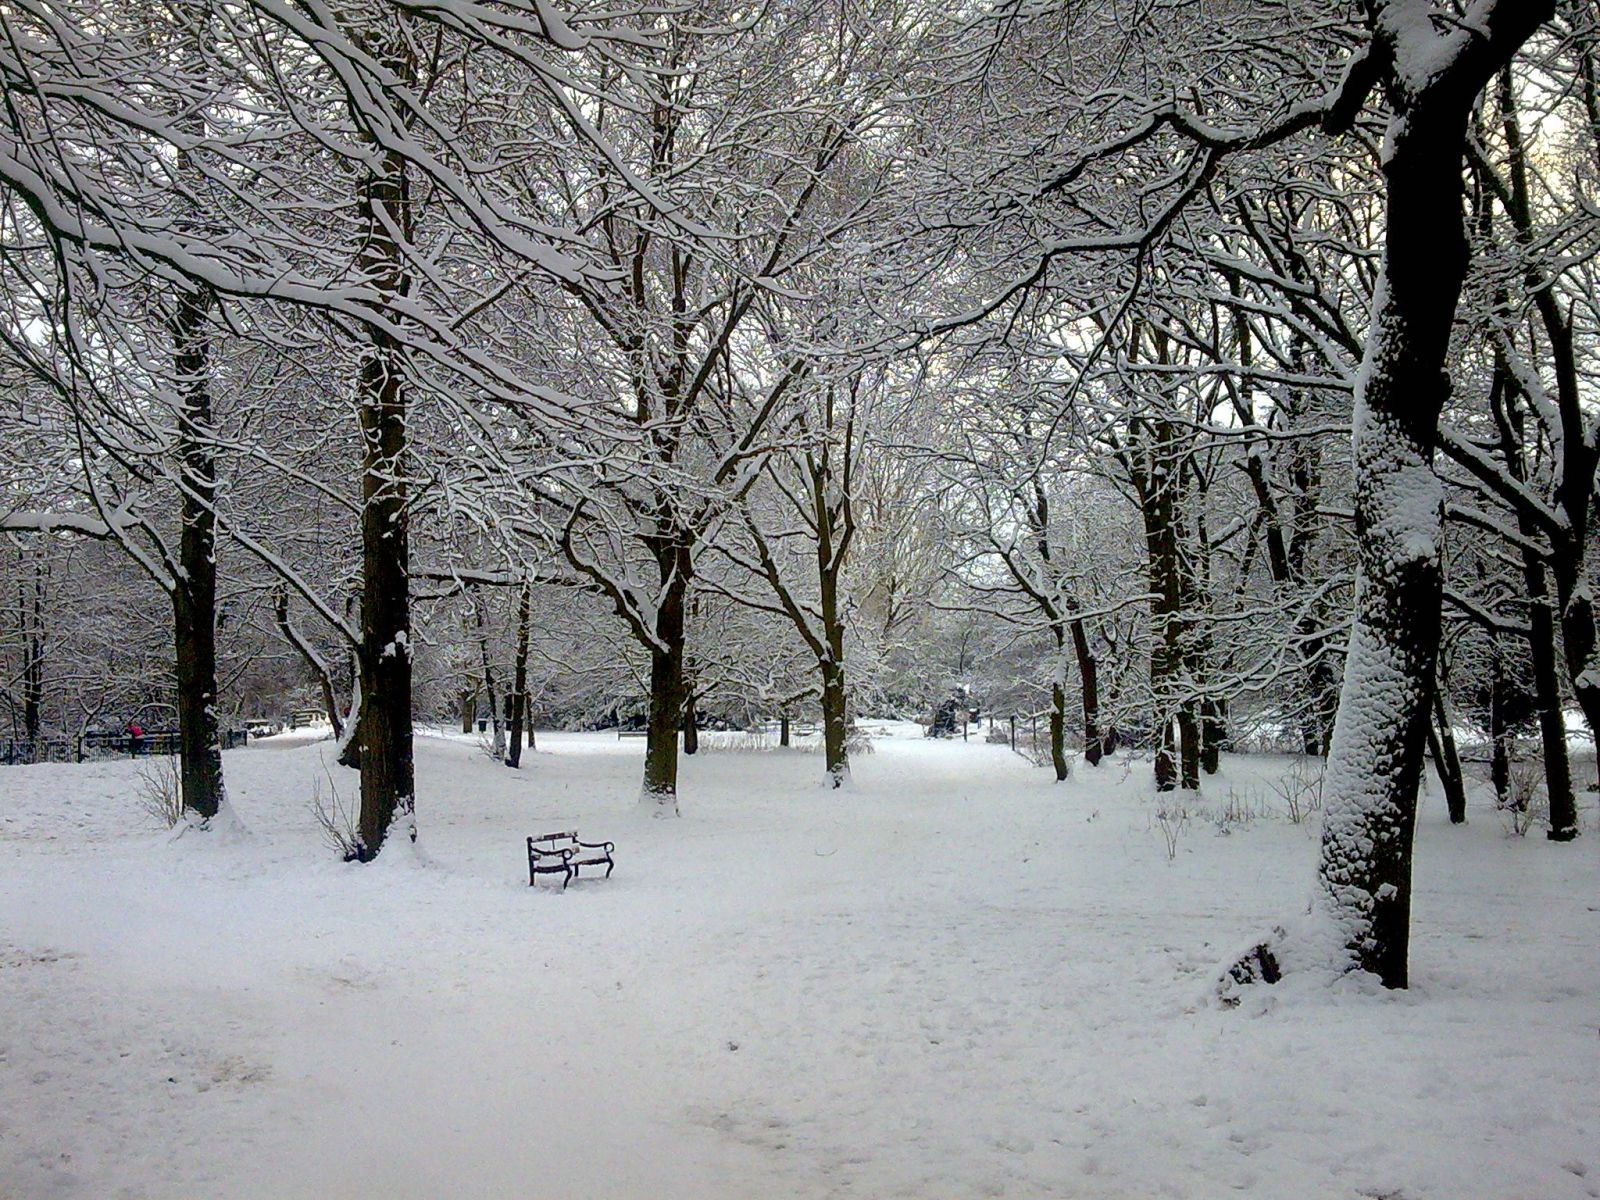 Solihull, Elmdon park in winter.